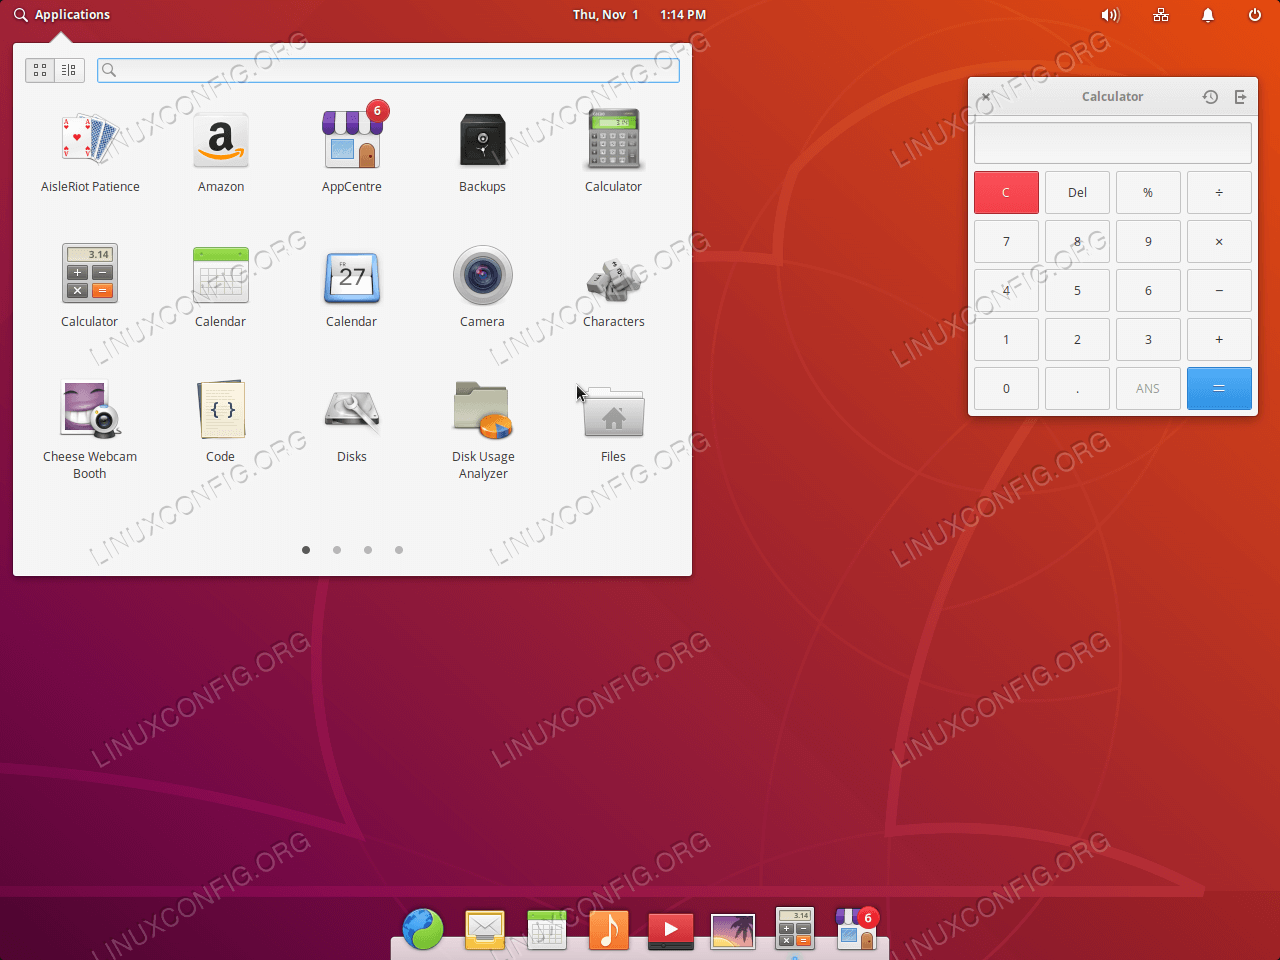 Pantheon Desktop graphical user environment on Ubuntu 18.04 Bionic Beaver